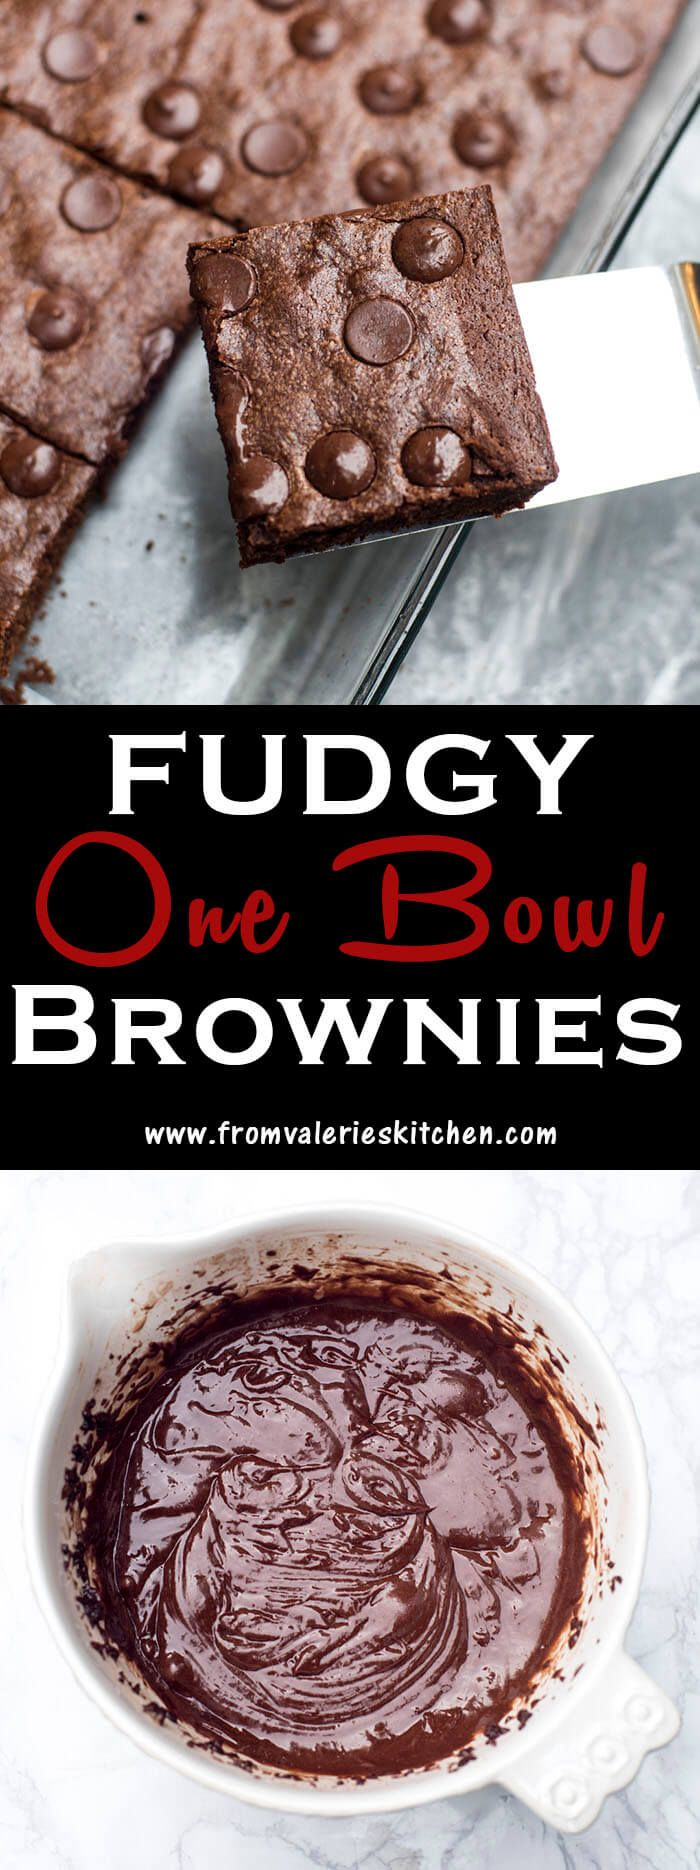 An easy mix and bake recipe with a cocoa powder base that results in a seriously fudgy brownie. Fudgy One Bowl Brownies are a rich, decadent treat!